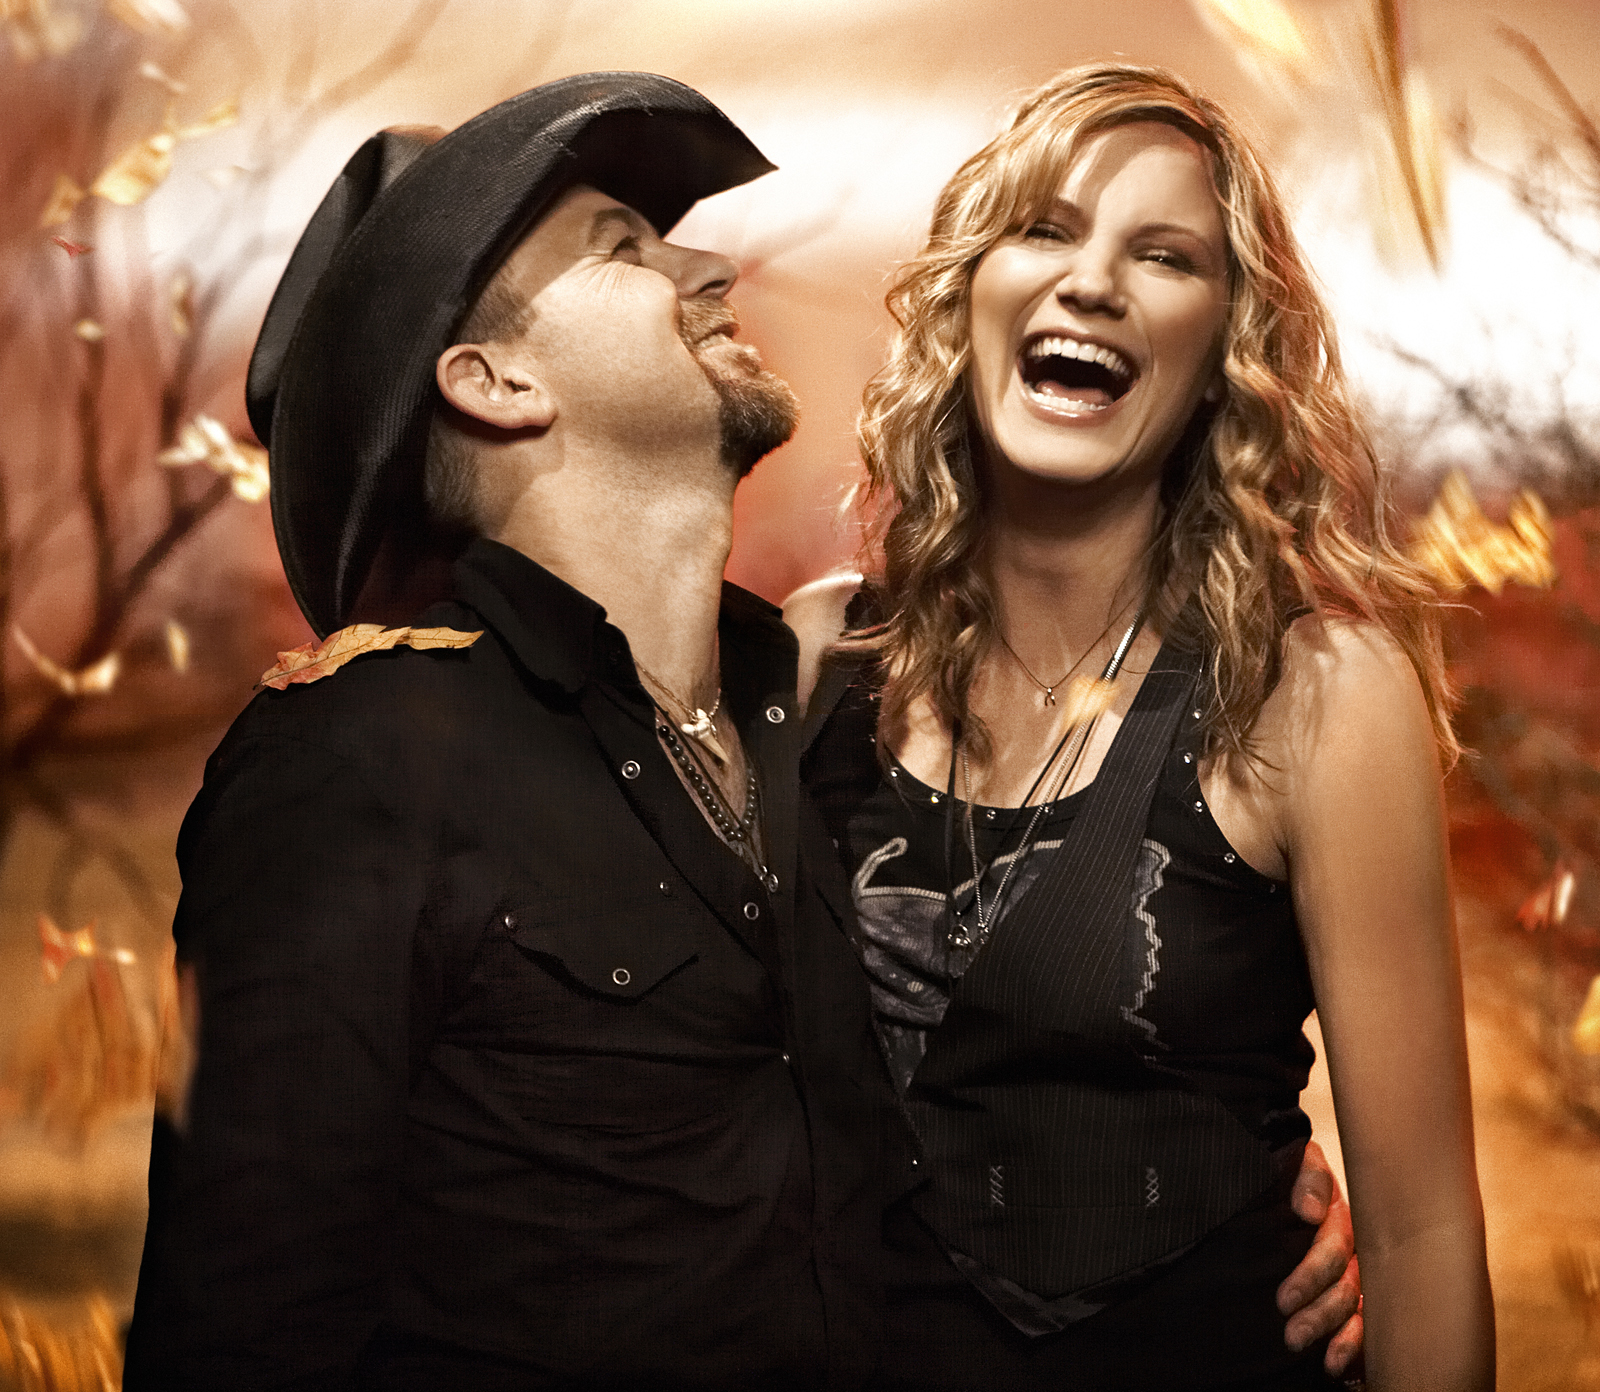 why did kristen hall leave sugarland